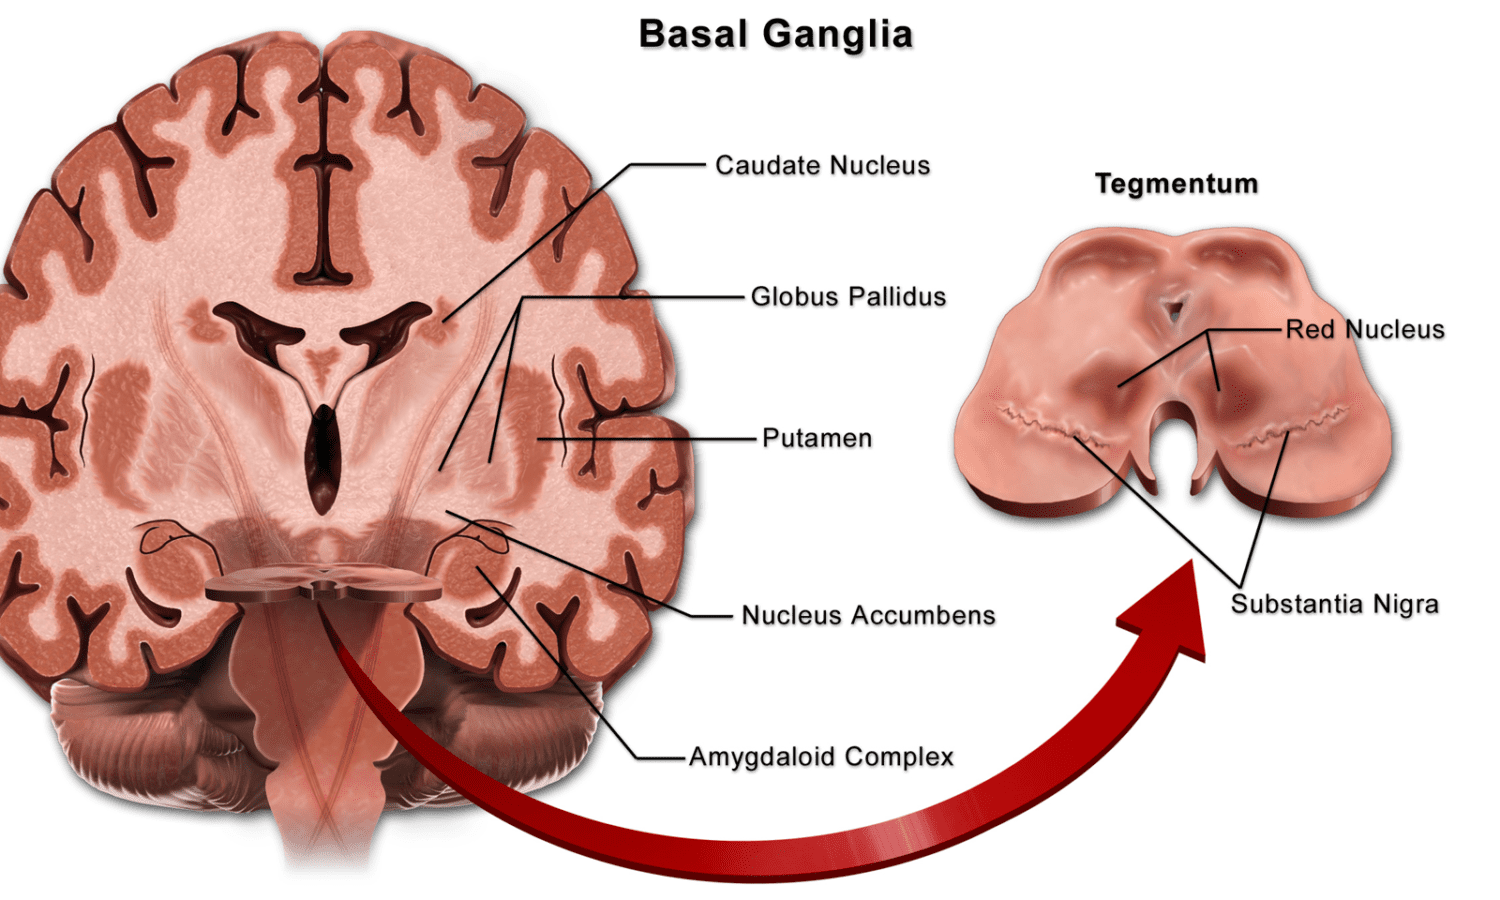 Basal ganglia and infant brain damage - birth injury